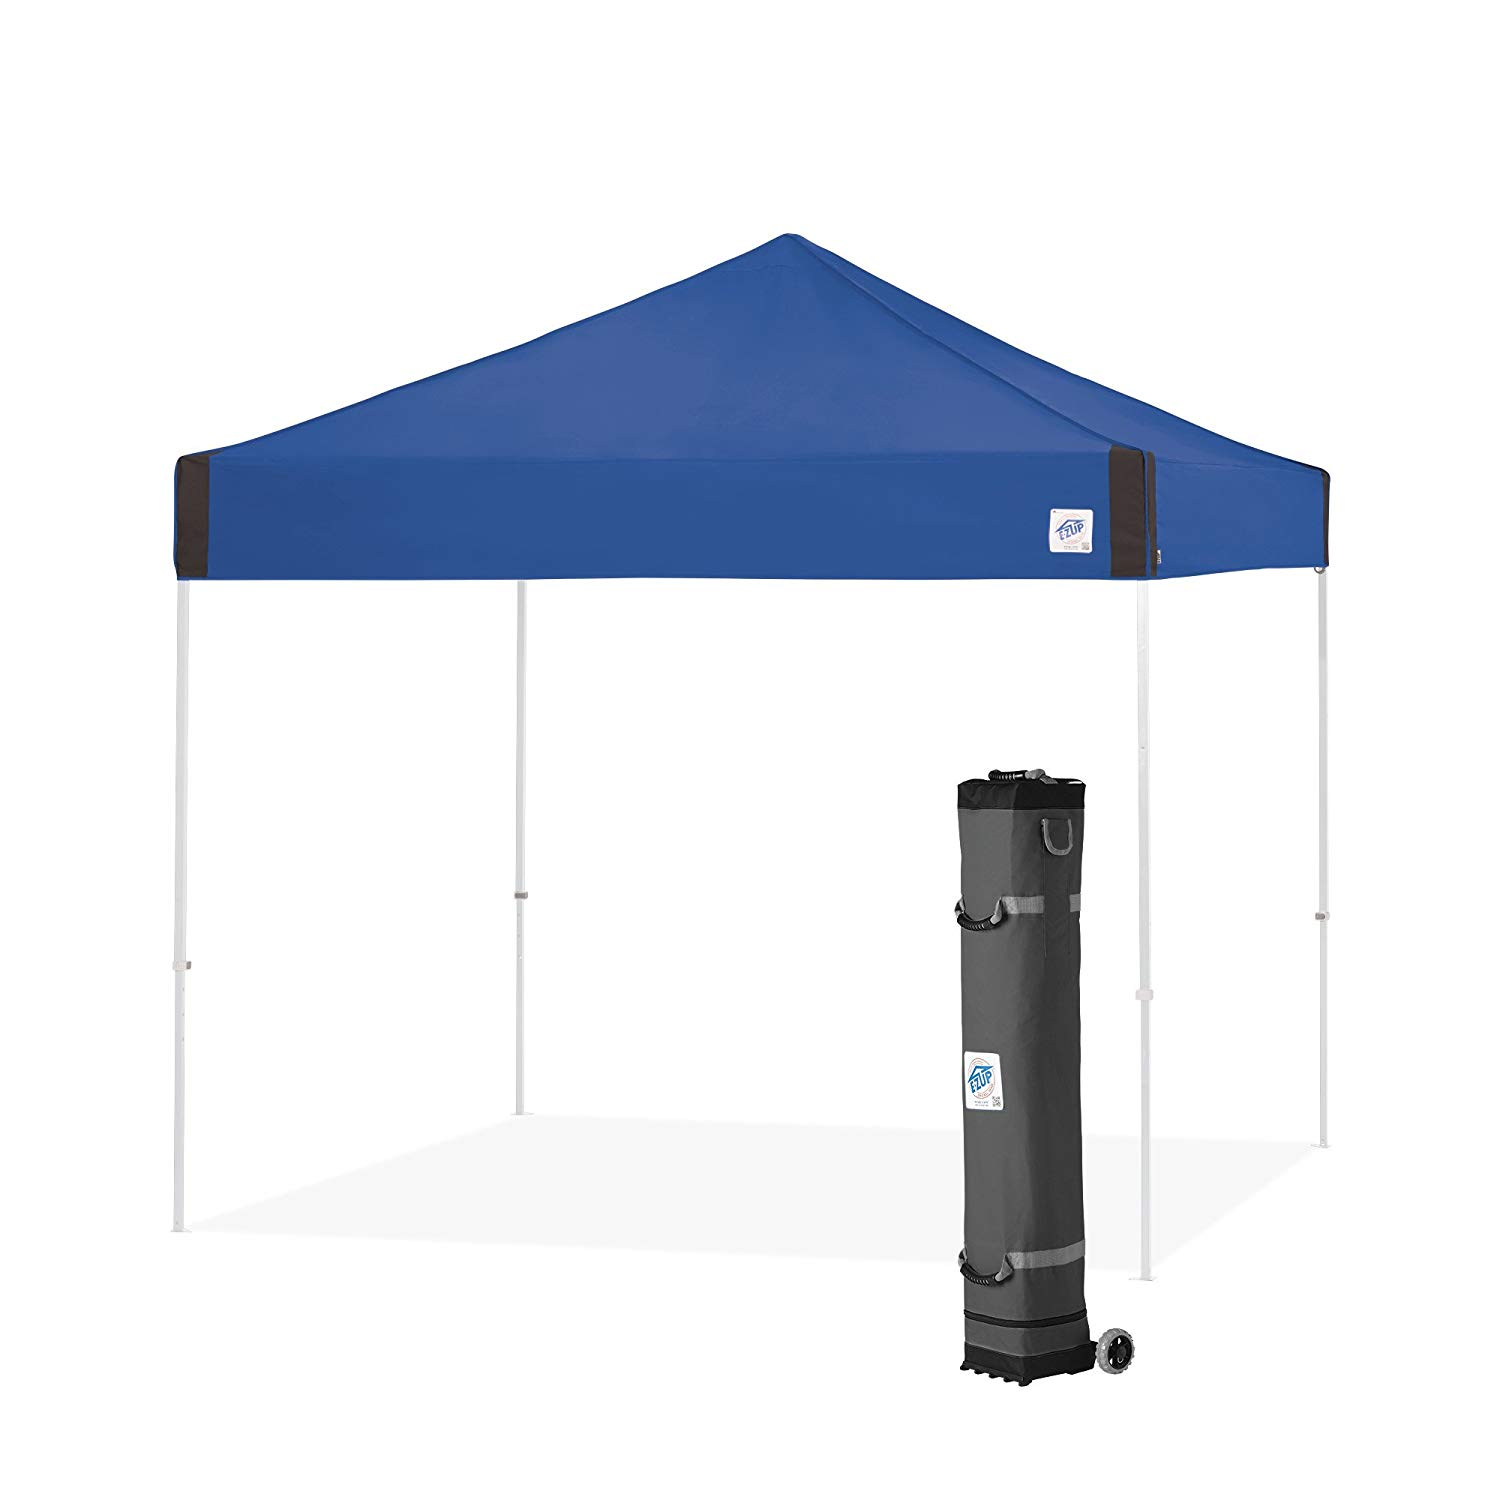 E-Z UP Pyramid Instant Canopy Popup Tent